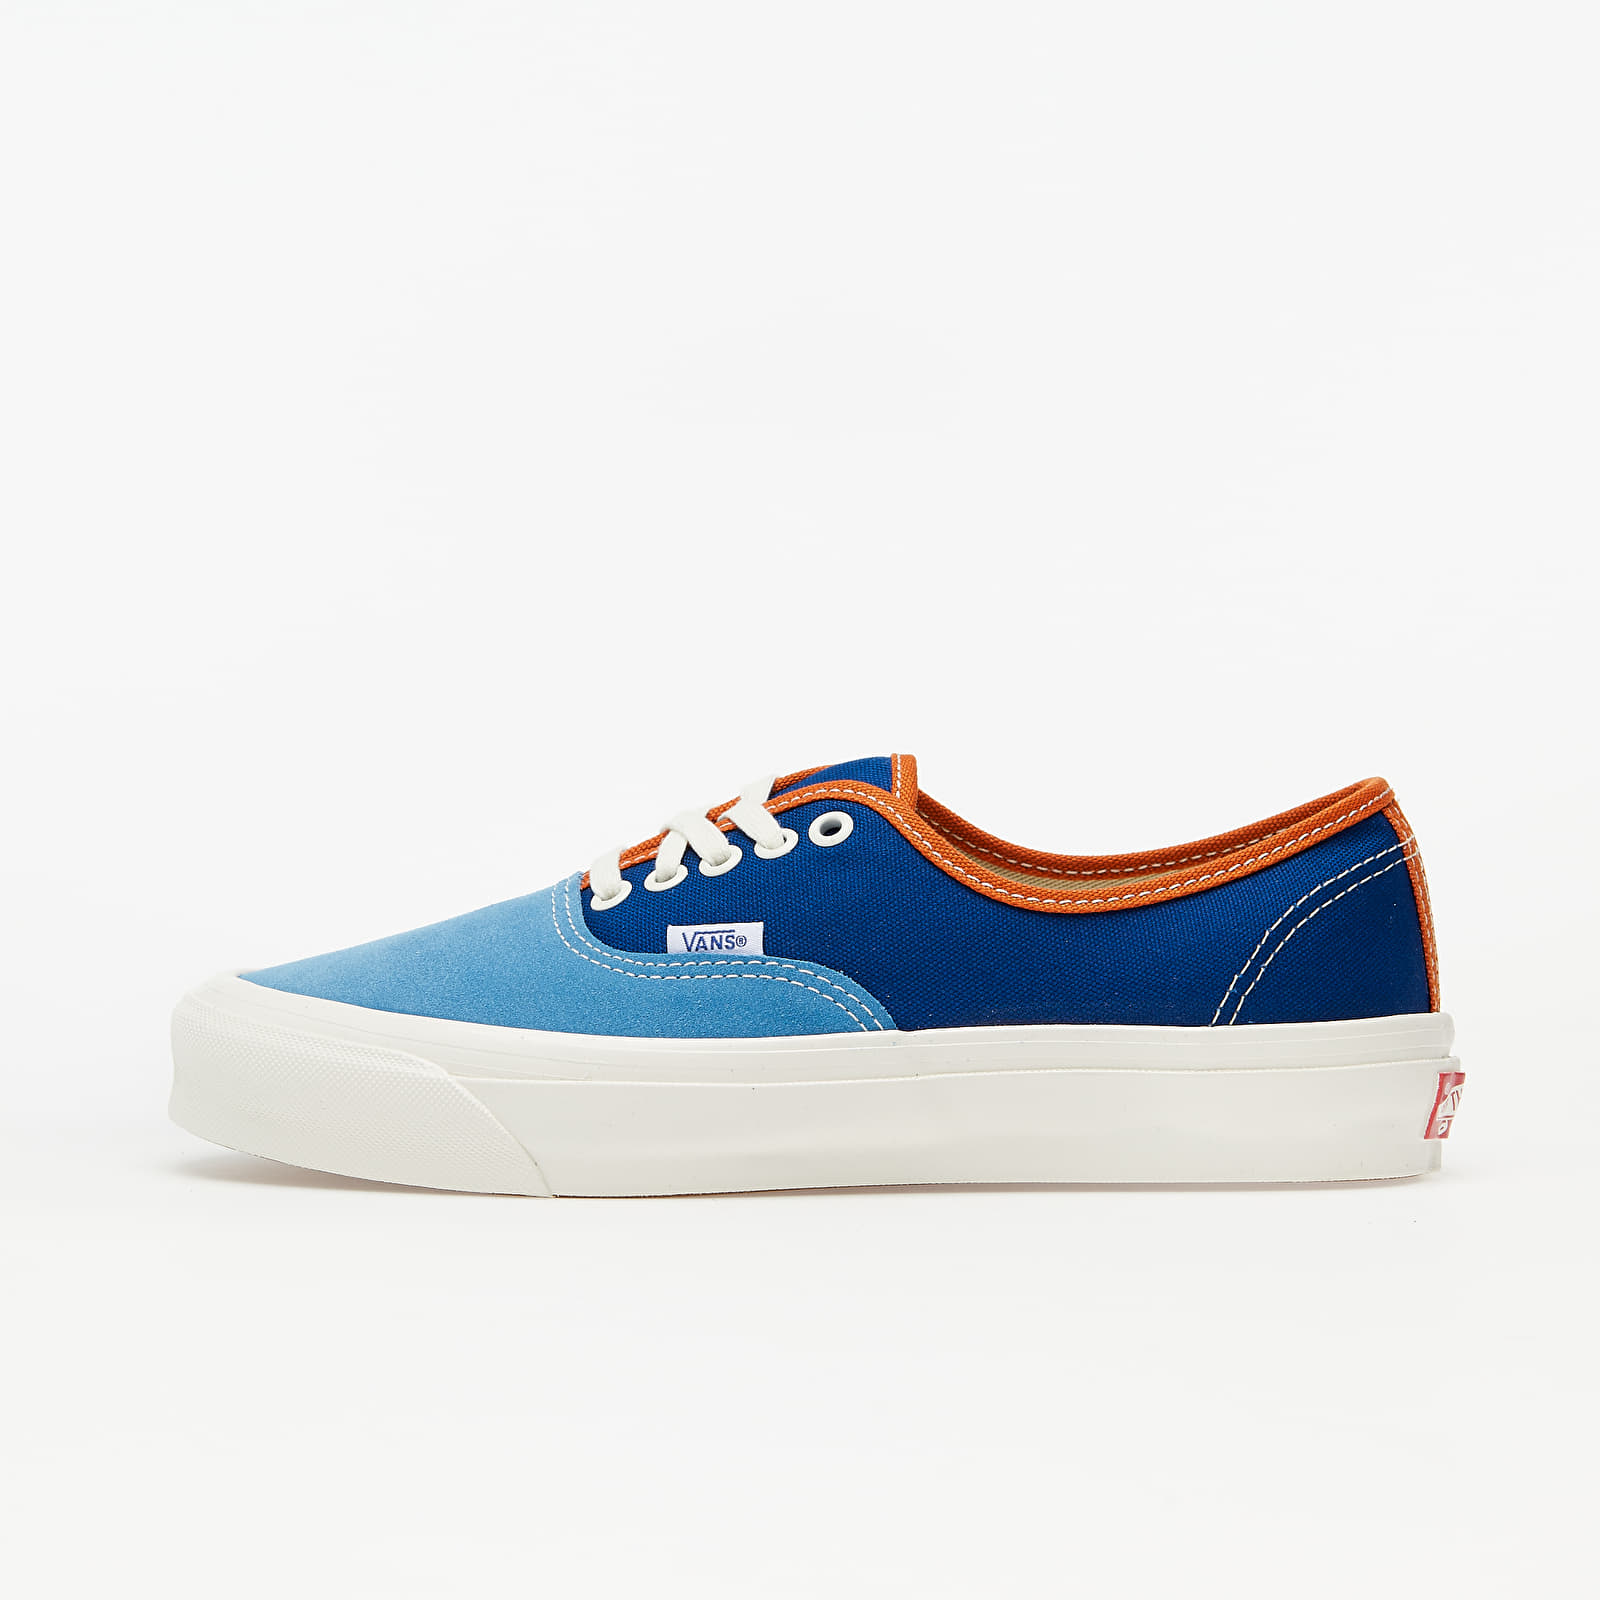 Vans OG Authentic LX (Suede/ Canvas) Blue VN0A4BV91YH1